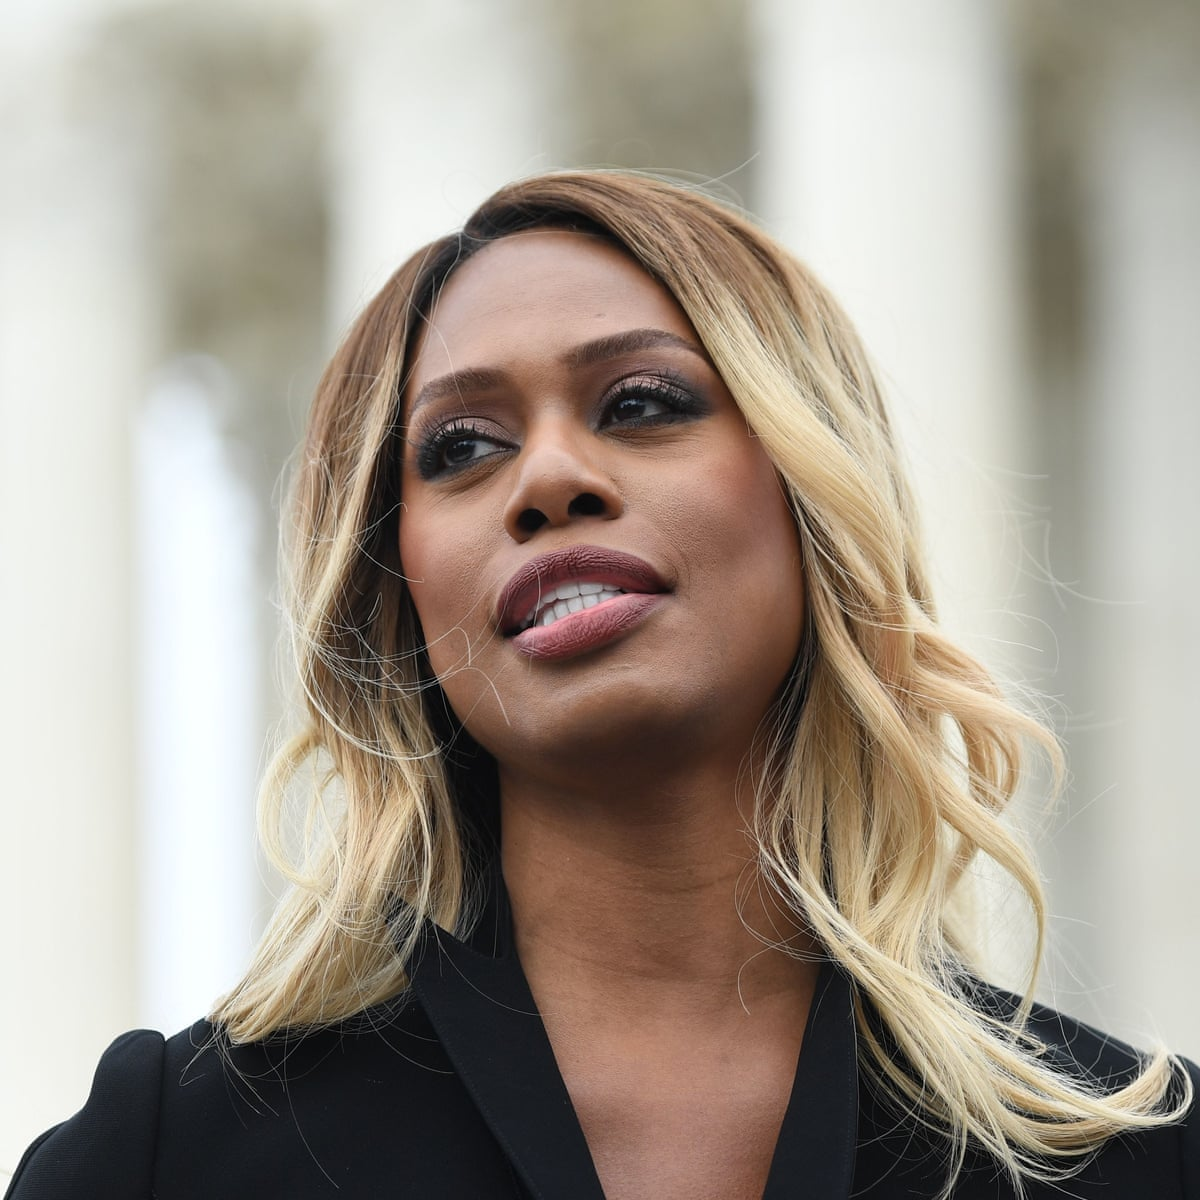 Laverne Cox targeted by transphobic attack in Los Angeles | LGBT rights |  The Guardian